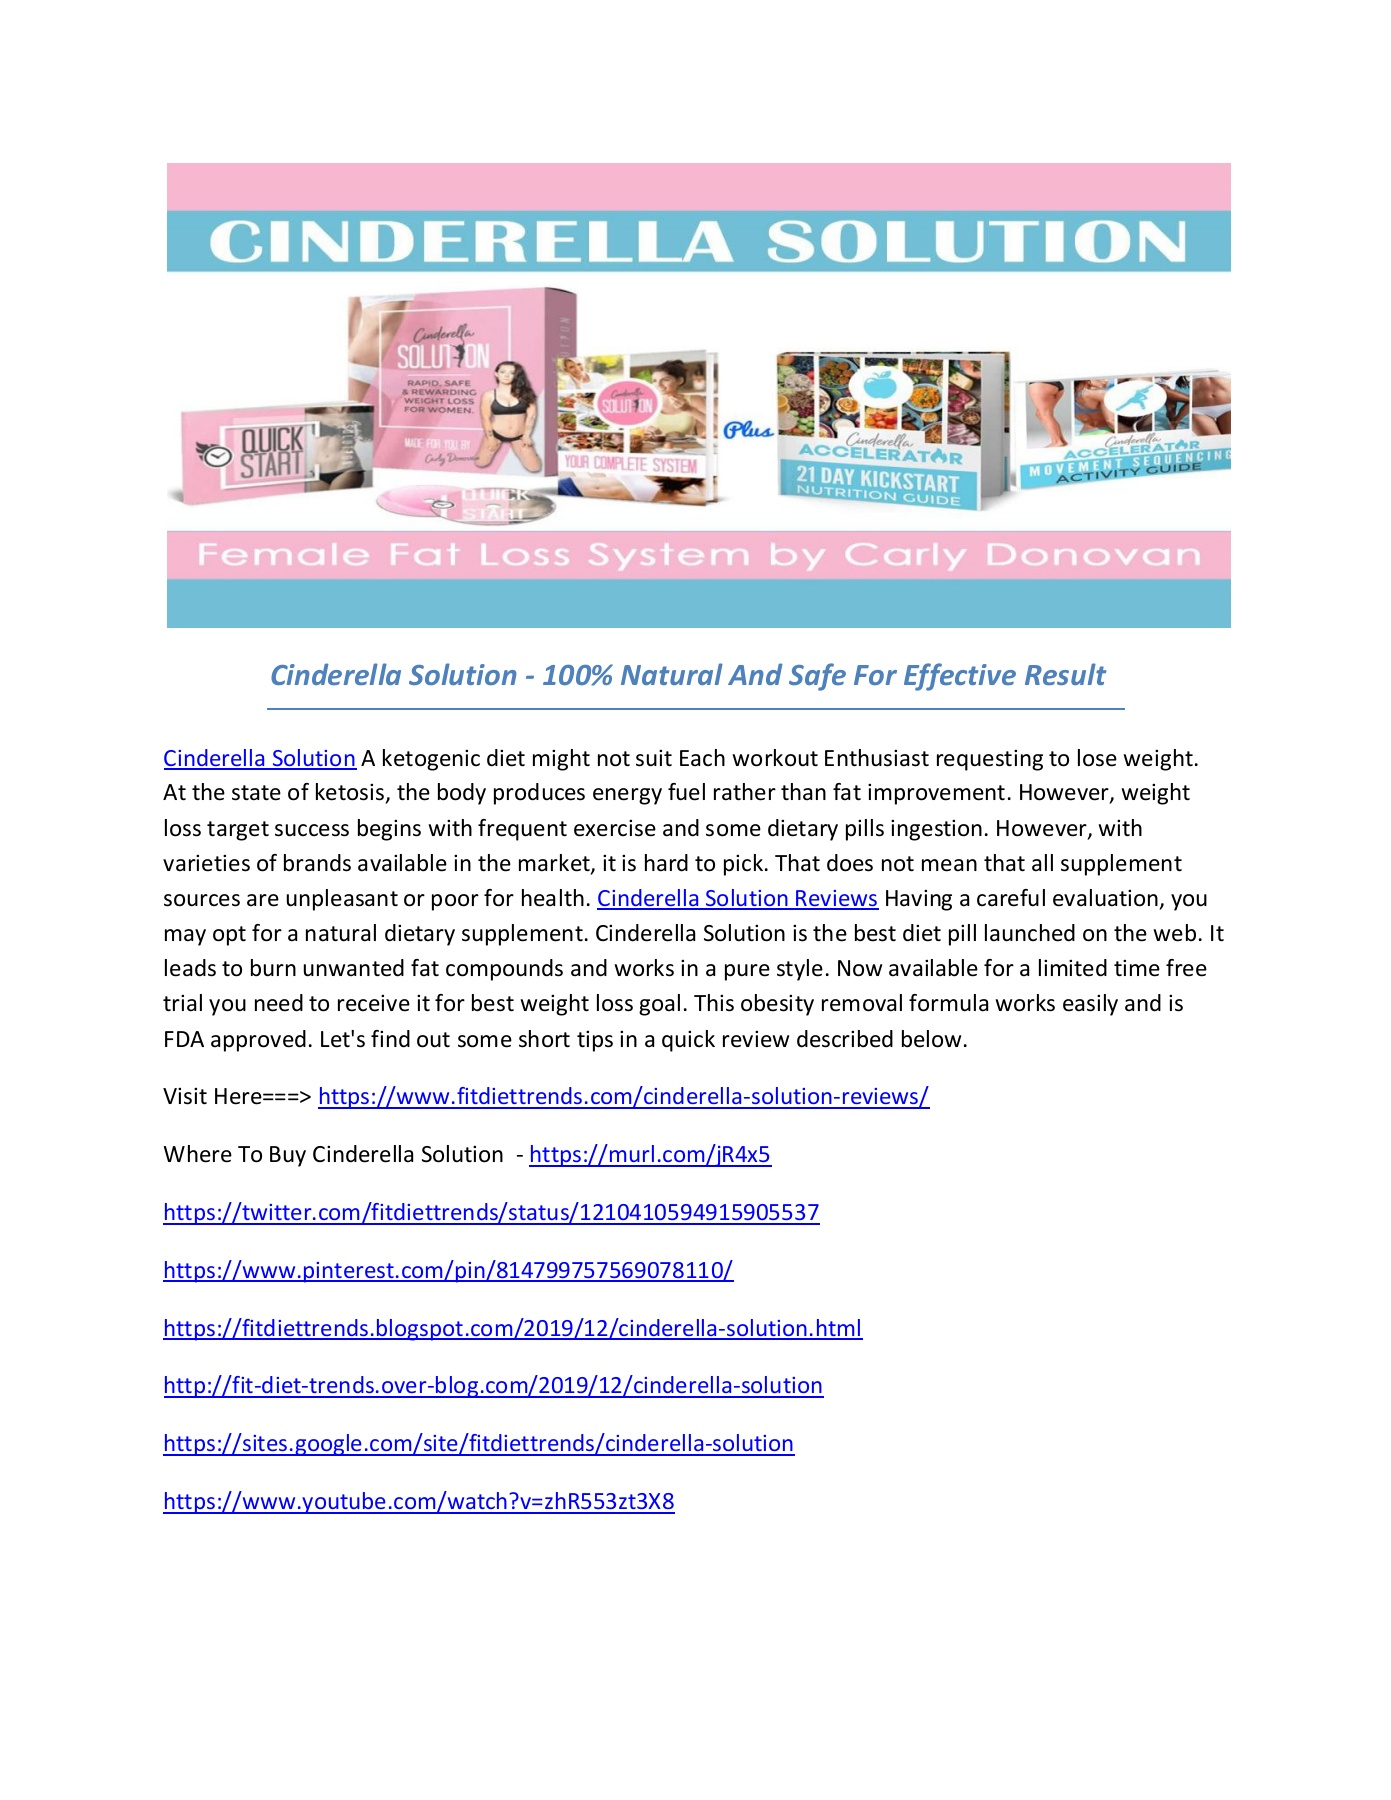 Cinderella Solution Outlet  Coupons 2020